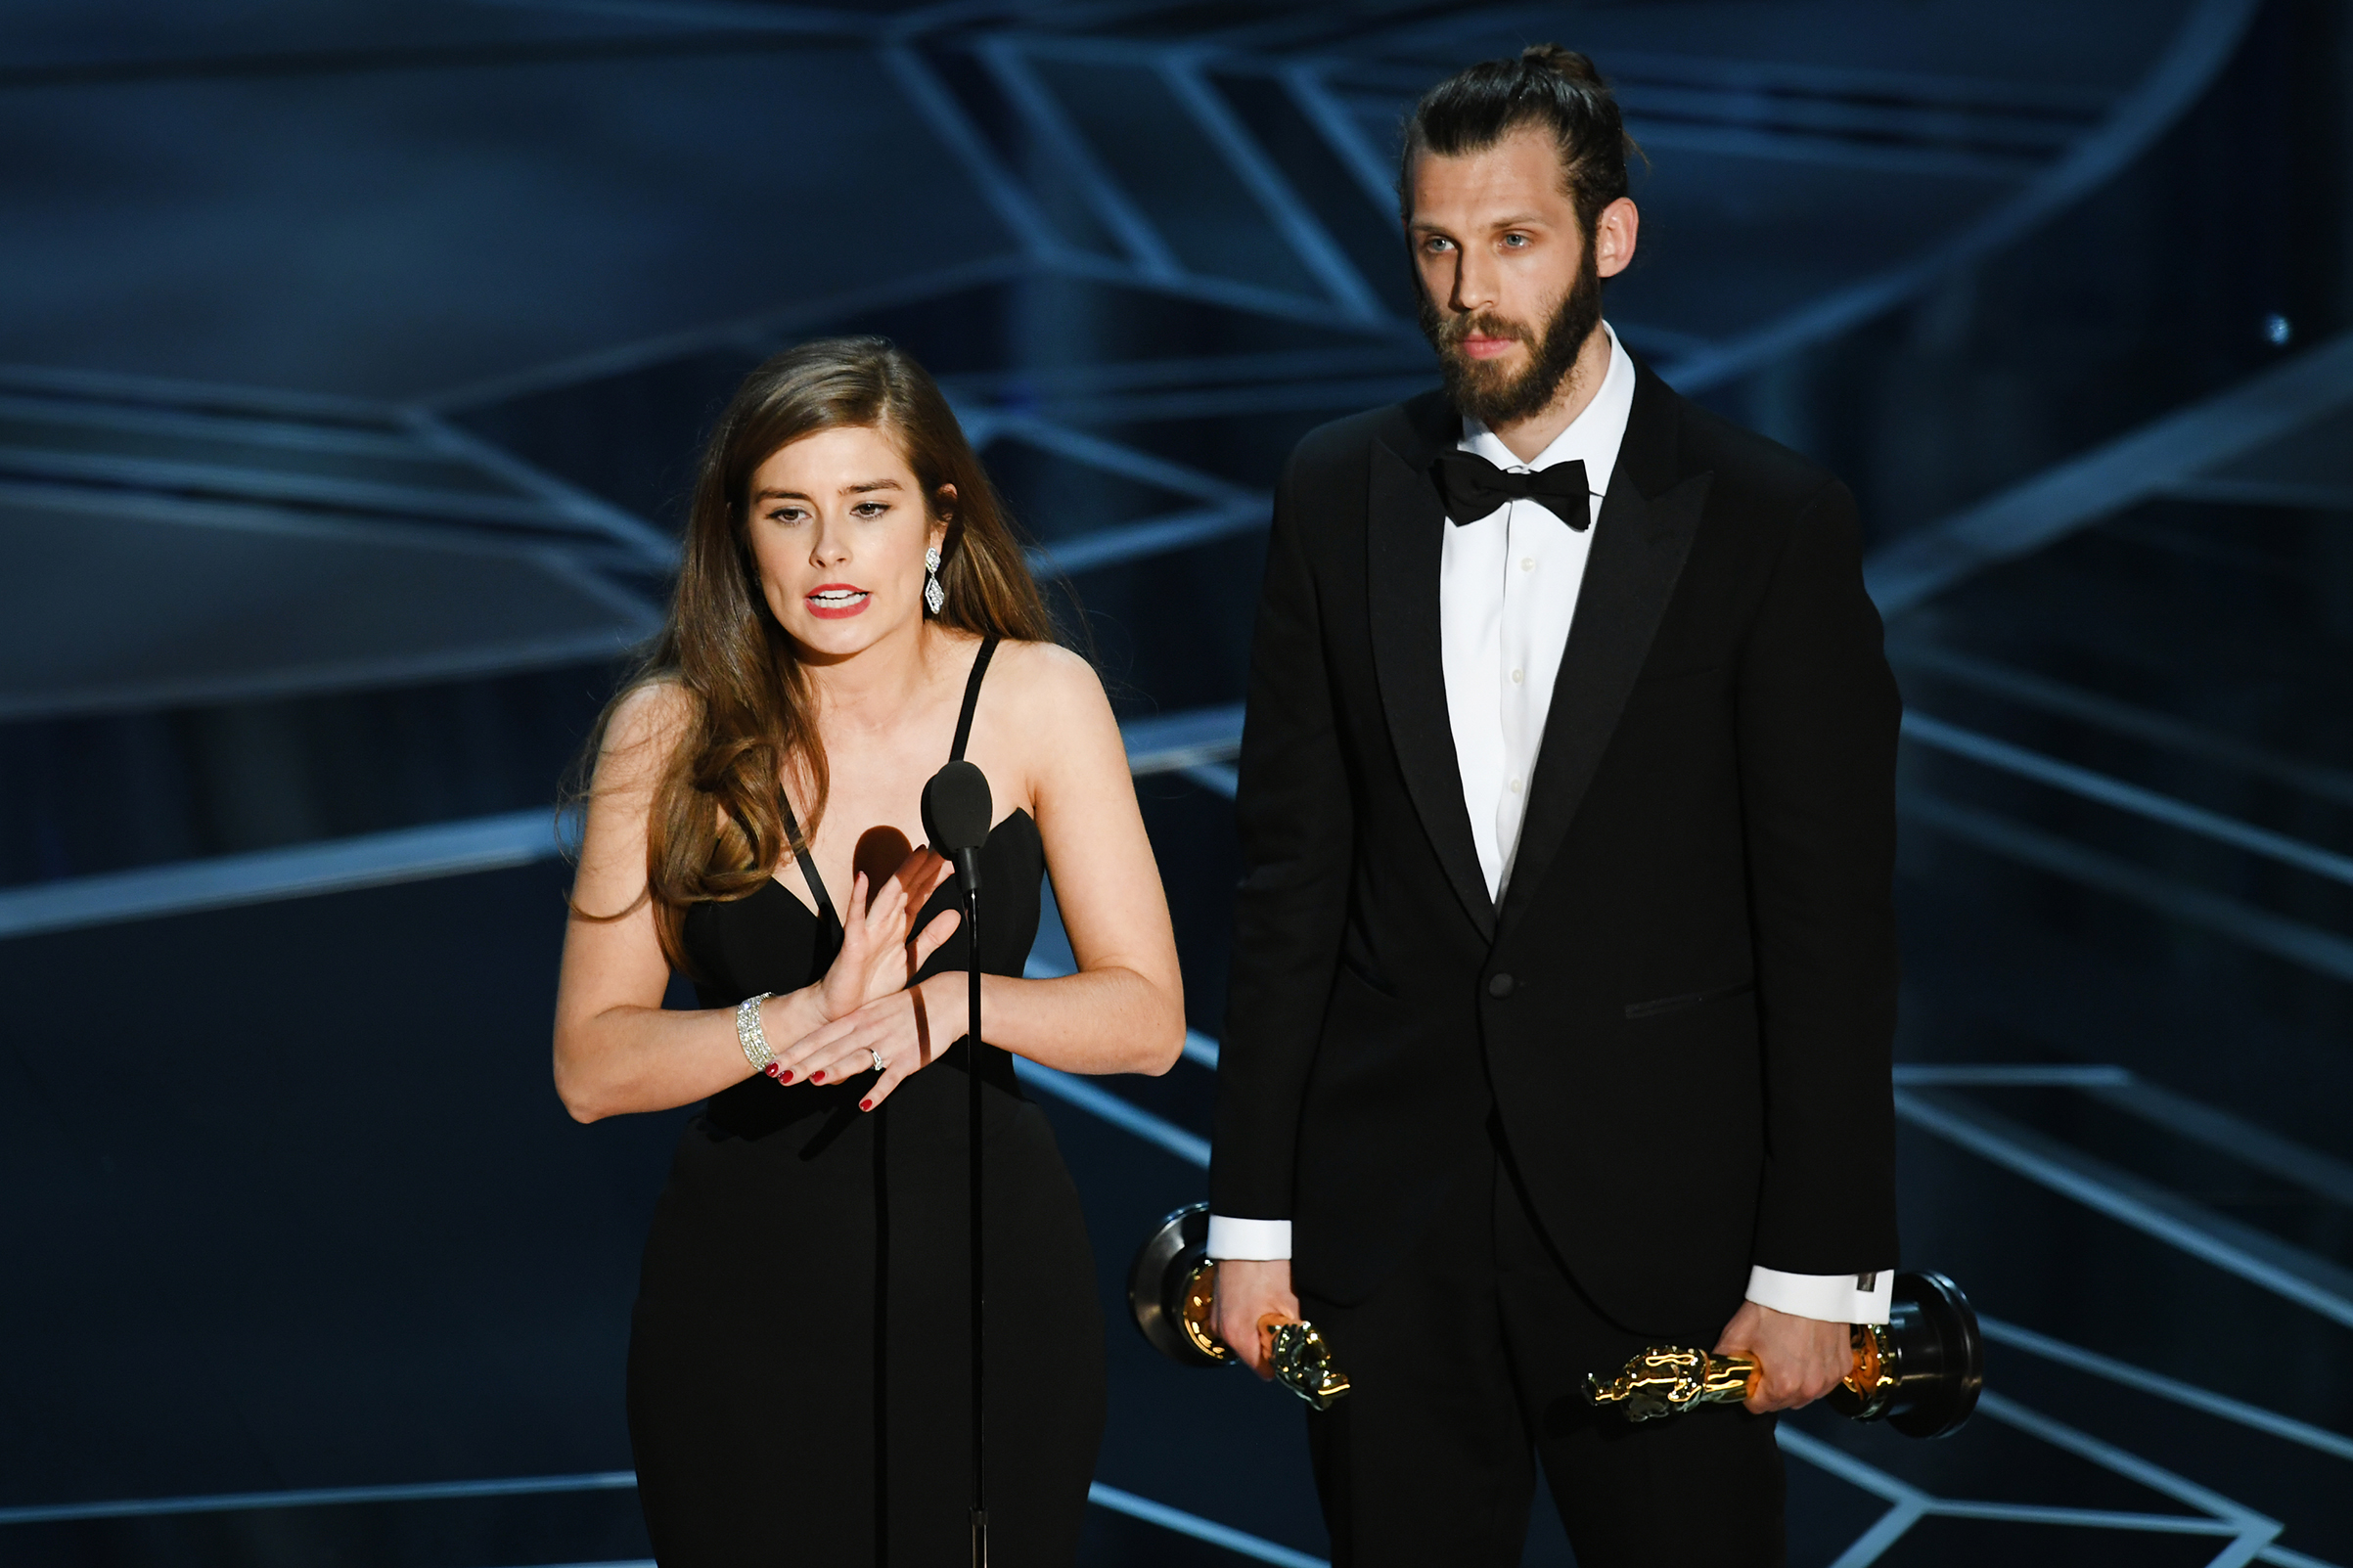 Filmmakers Rachel Shenton (L) and Chris Overton accept Best Live Action Short Film for 'The Silent Child' onstage during the 90th Annual Academy Awards at the Dolby Theatre at Hollywood & Highland Center on March 4, 2018 in Hollywood.